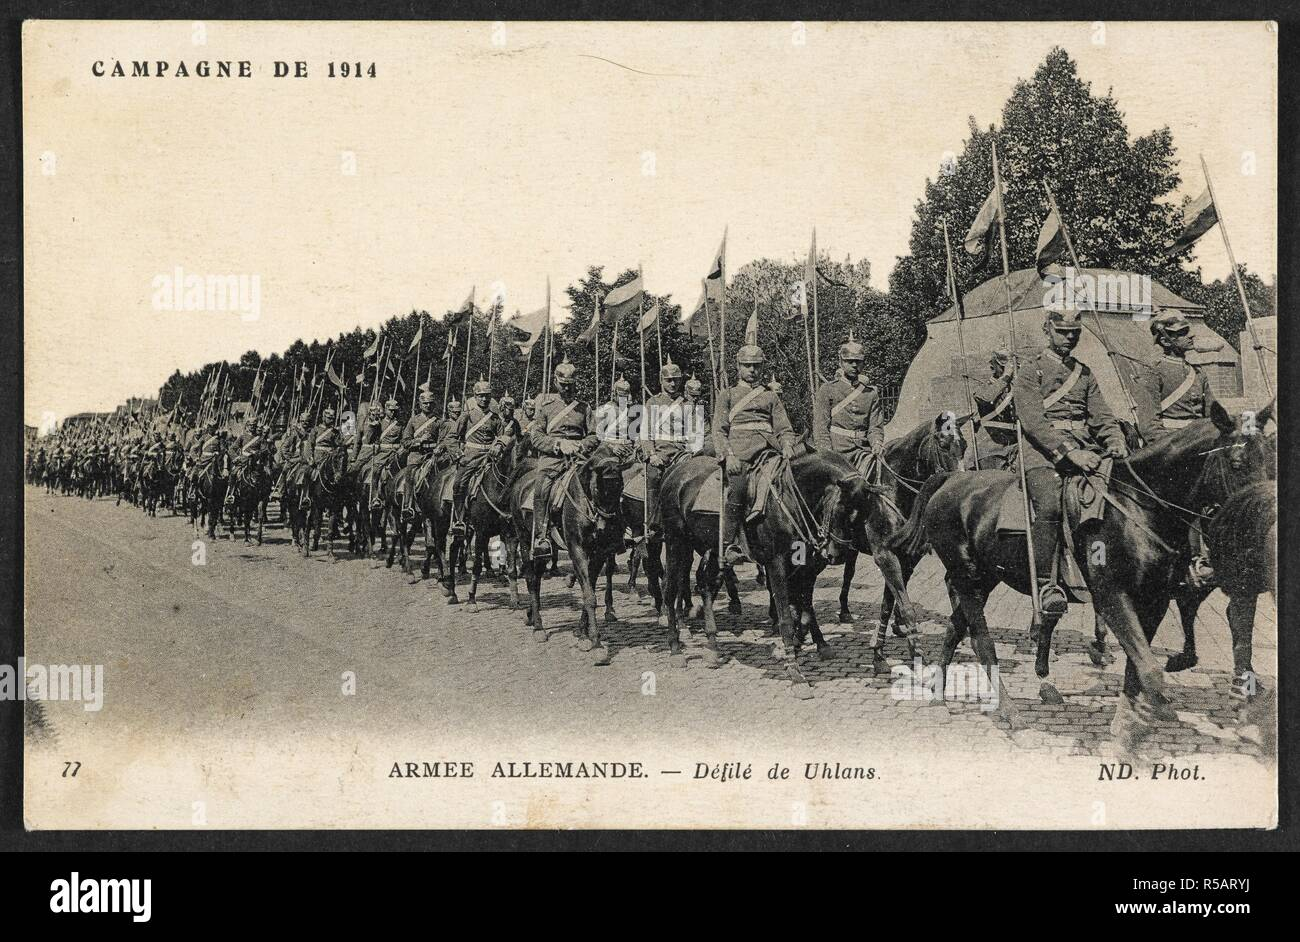 'Campagne de 1914 - Armee Allemande - defile de uhlans.' A postcard dated 28 December 1914, sent to a French address. the picture shows a line of German Uhlans (lancers). 28-Dec-14. Source: Pte.coll.pstcard 6 (private collection). Language: French. - Stock Image